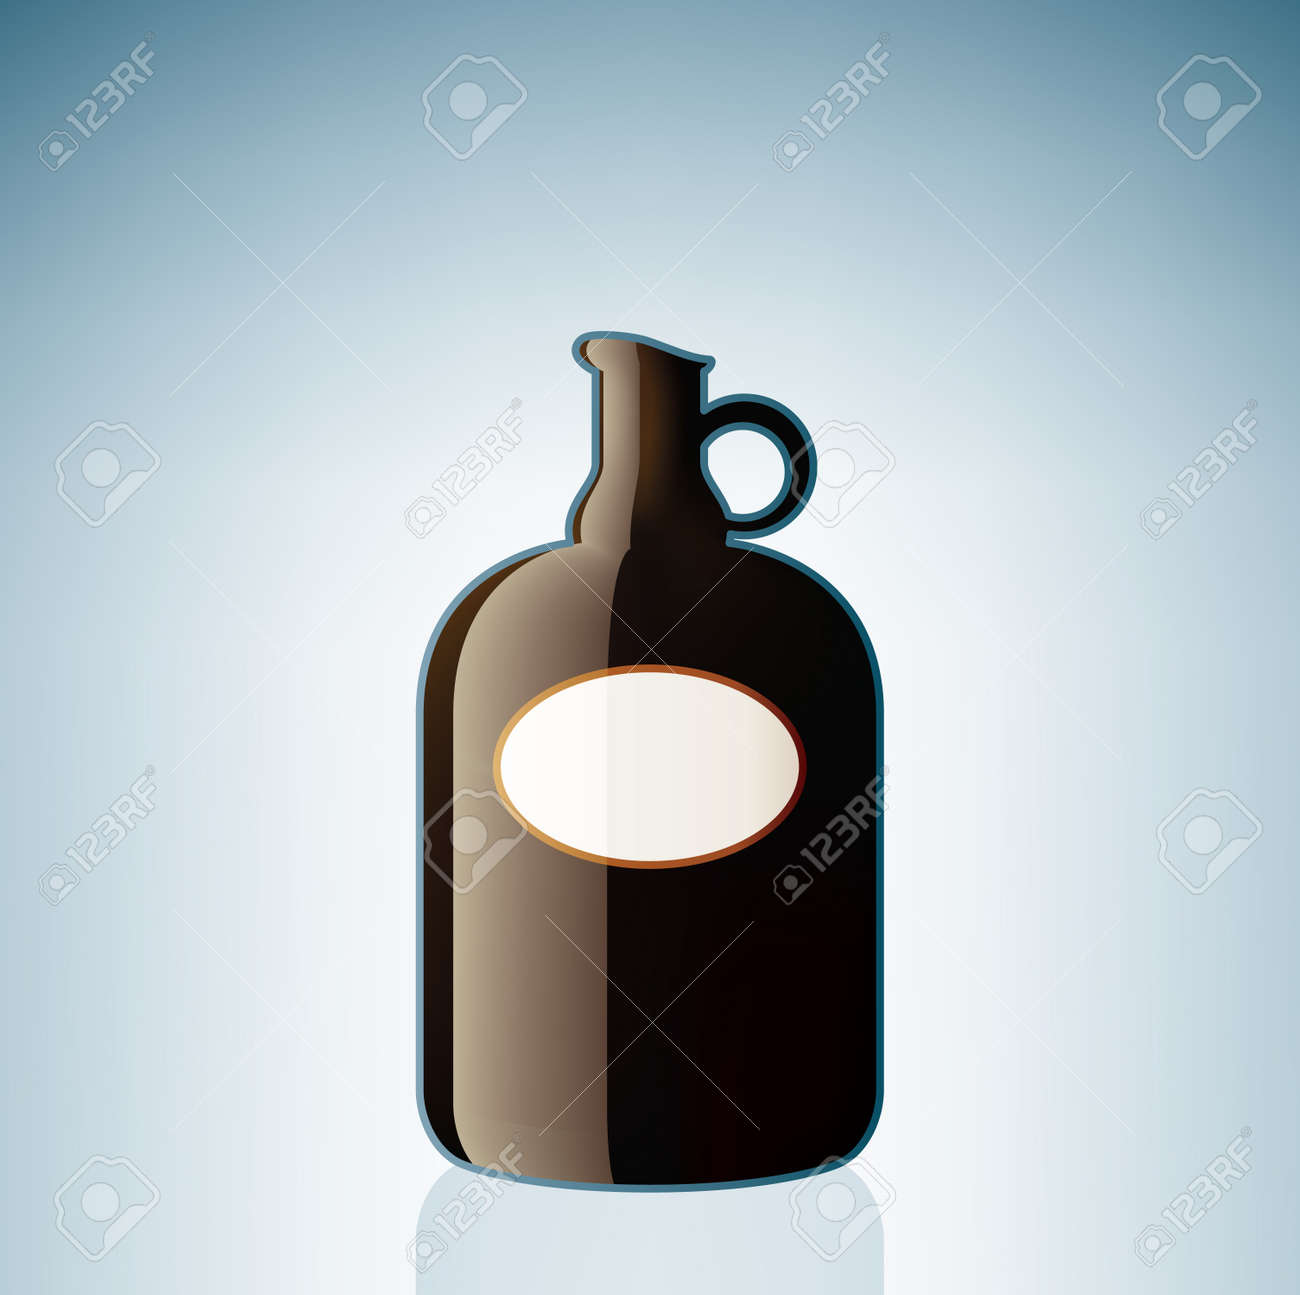 Brown Wine Bottle (part of the Alcohol Glass Icons Set) Stock Vector - 7247341